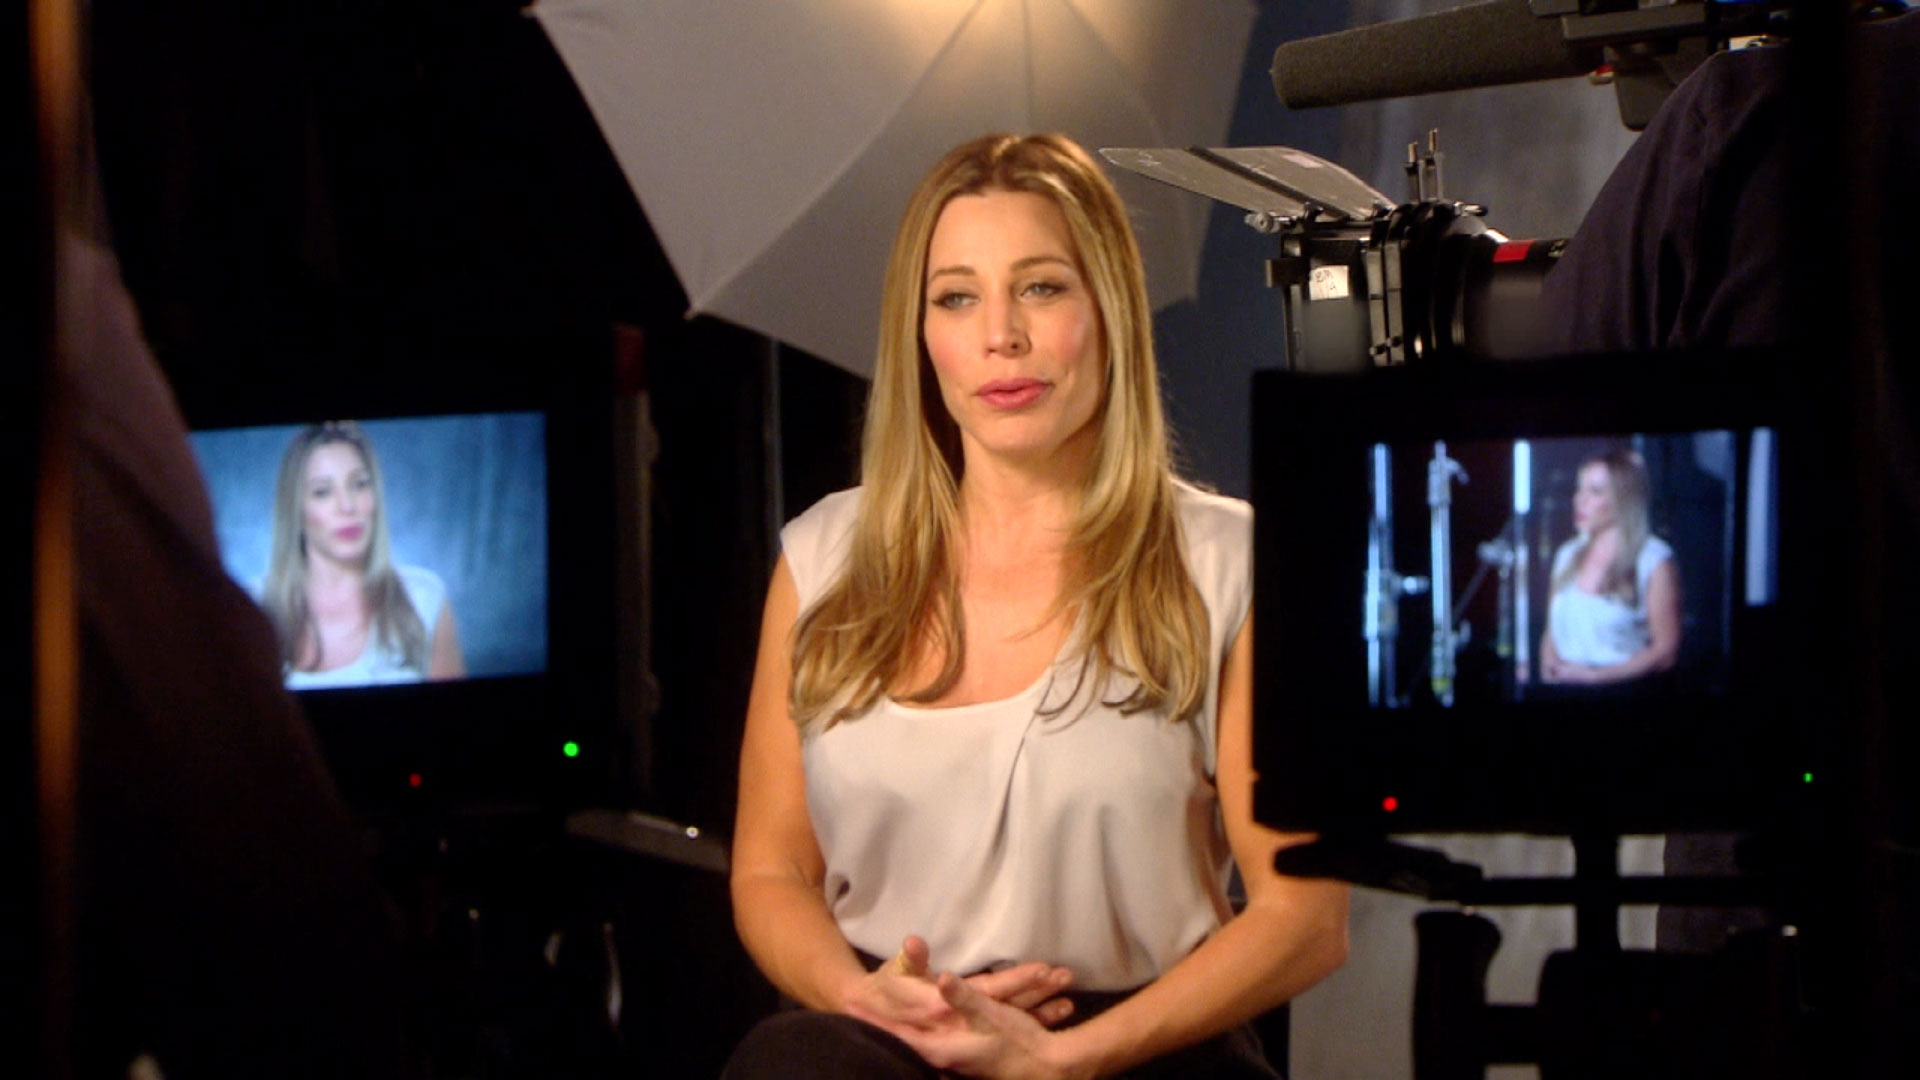 Taylor Dayne Wants a Love to Lead Her